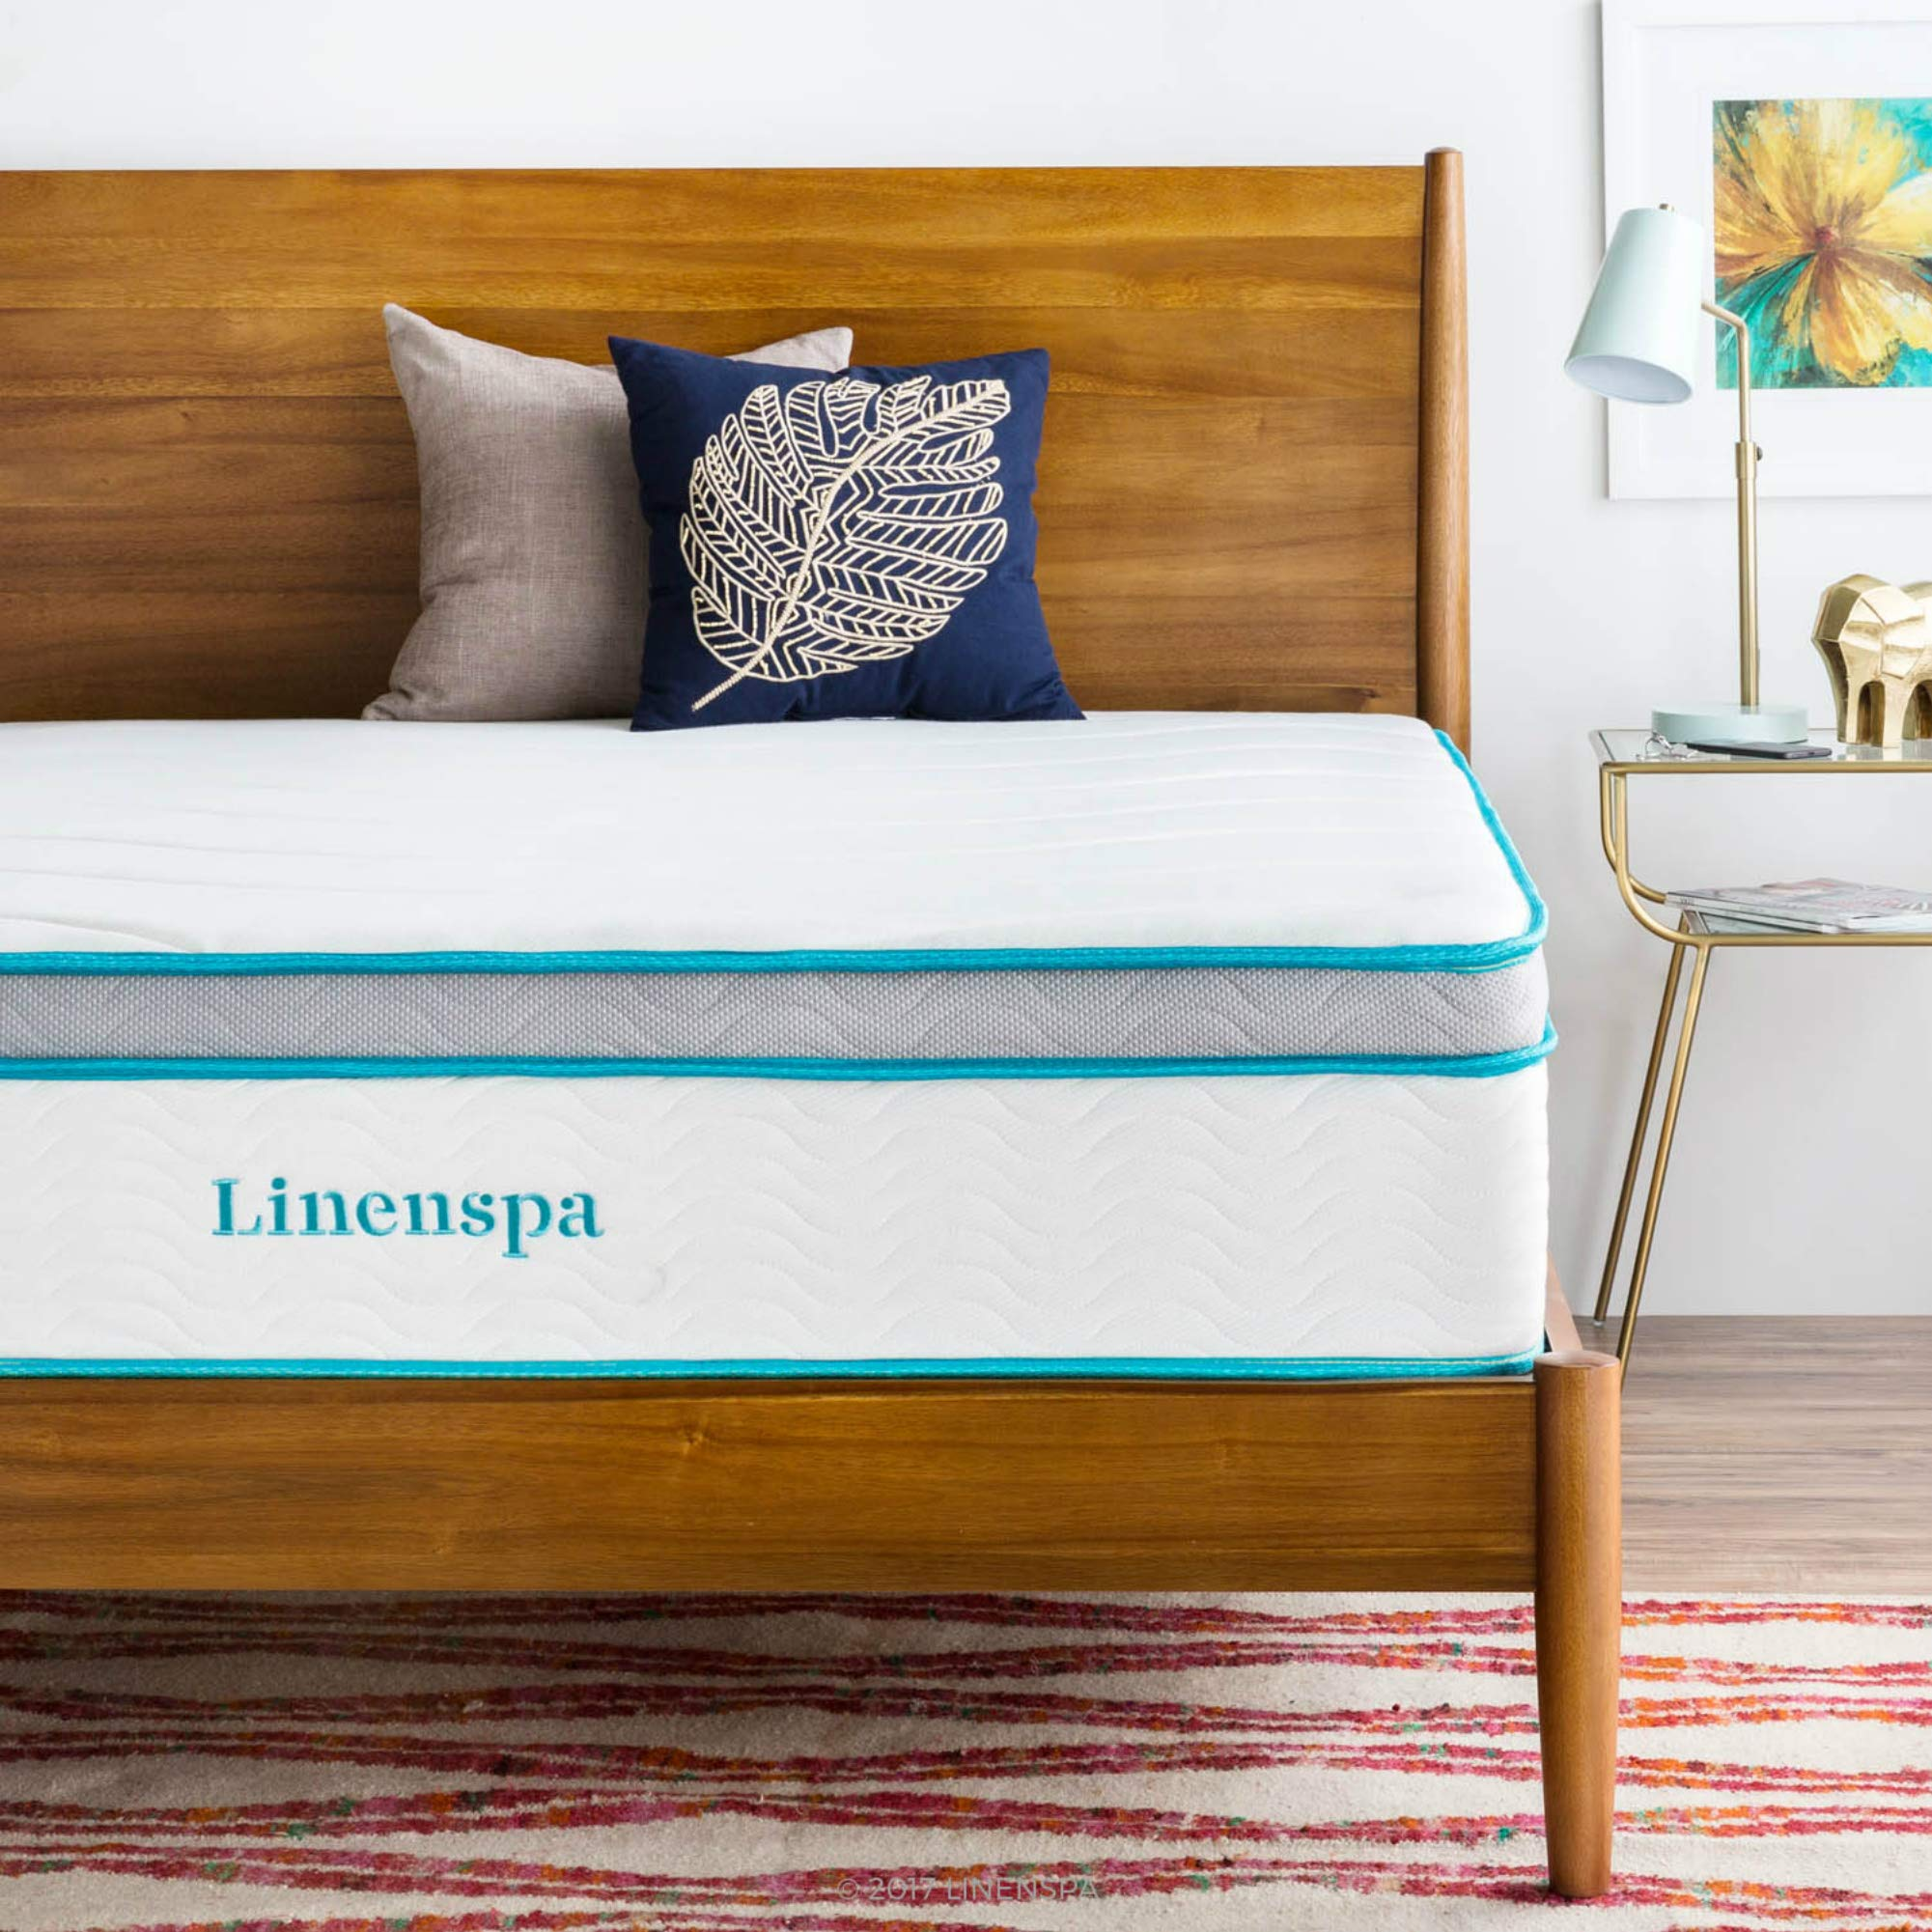 Linenspa 12 Inch Gel Memory Foam Hybrid Mattress - Ultra Plush - Individually Encased Coils - Sleeps Cooler Than Regular Memory Foam - Edge Support - Quilted Foam Cover - Twin